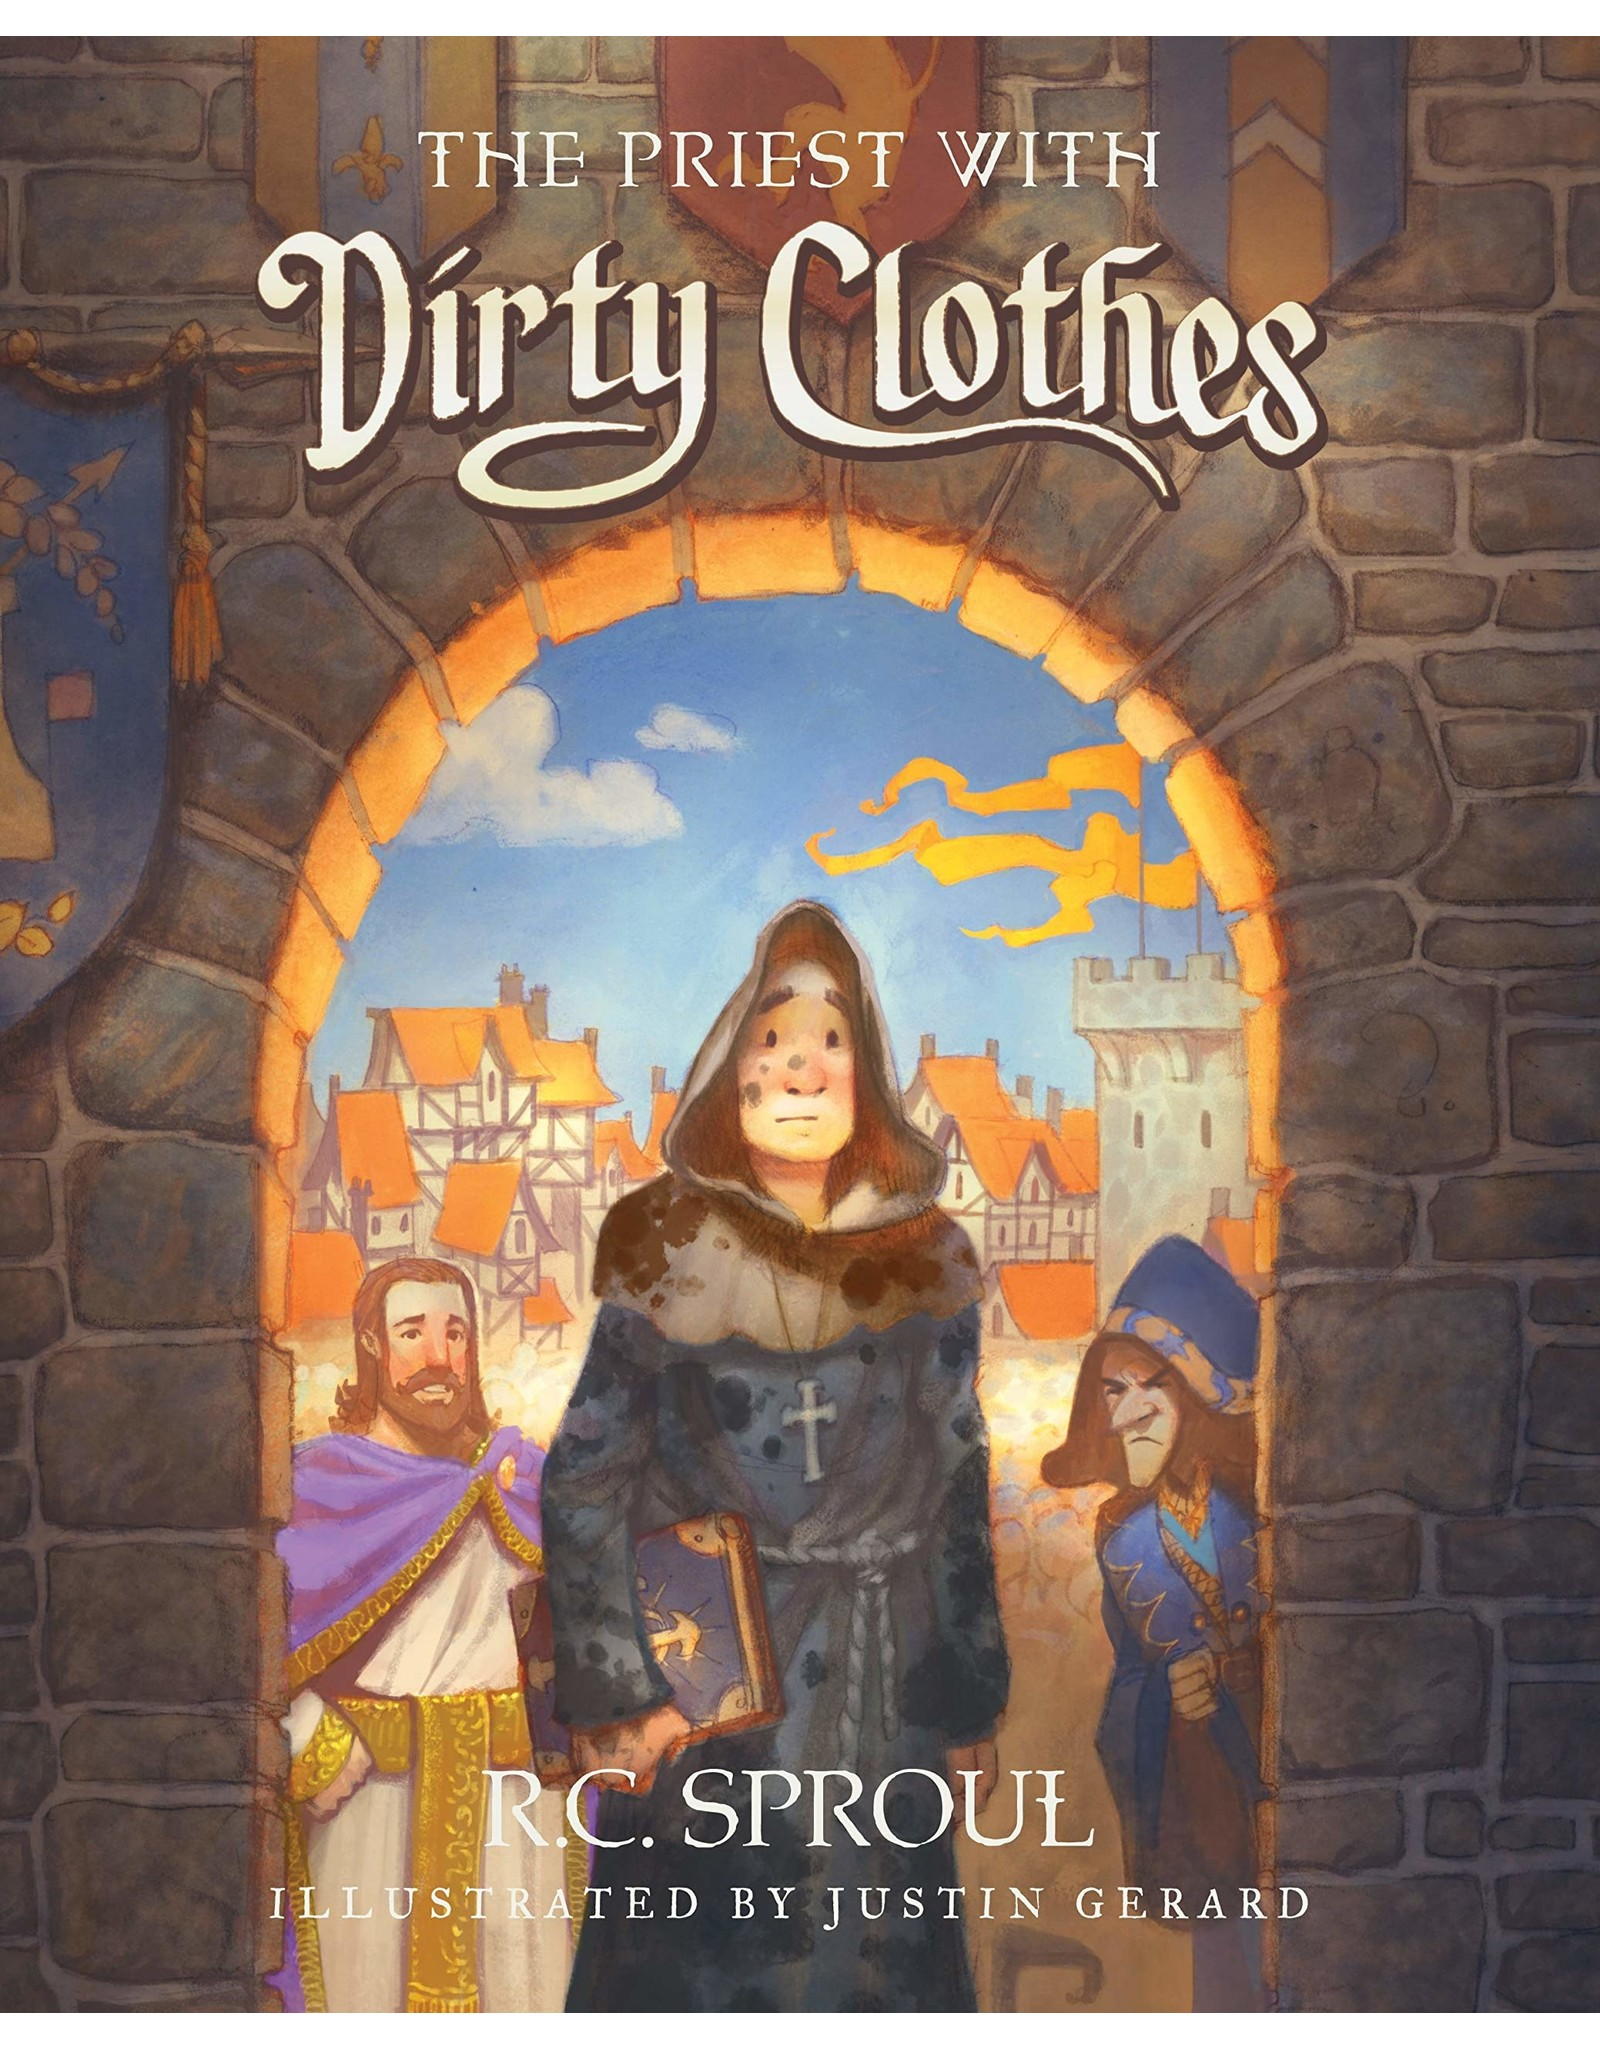 Ligonier / Reformation Trust The Priest with Dirty Clothes